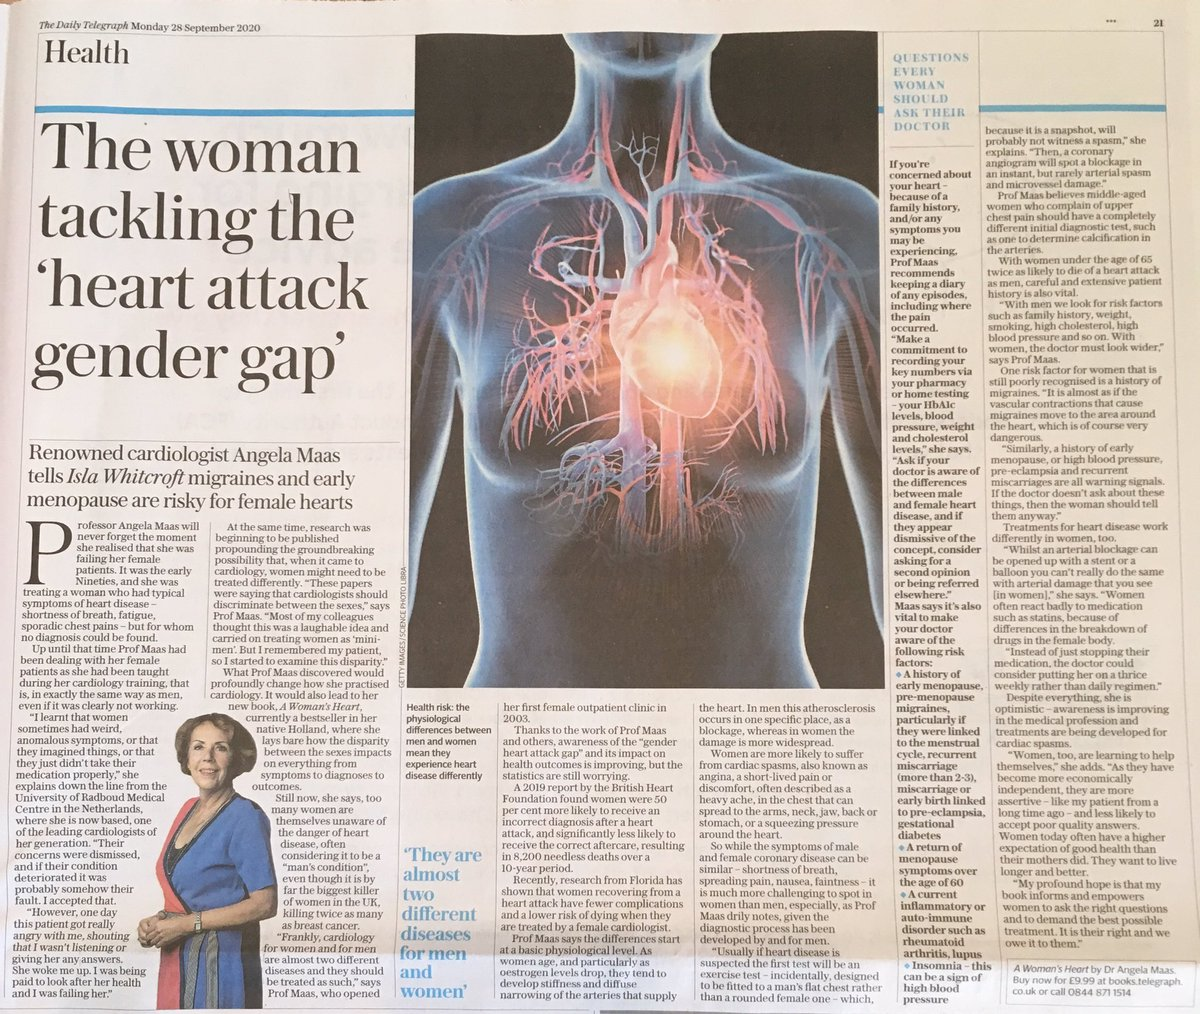 Find out why female heart health really matters with @MaasAngela as she talks about her book #AWomansHeart and the shocking gender heart attack gap in today's @Telegraph @Octopus_Books https://t.co/05HMn12uAB